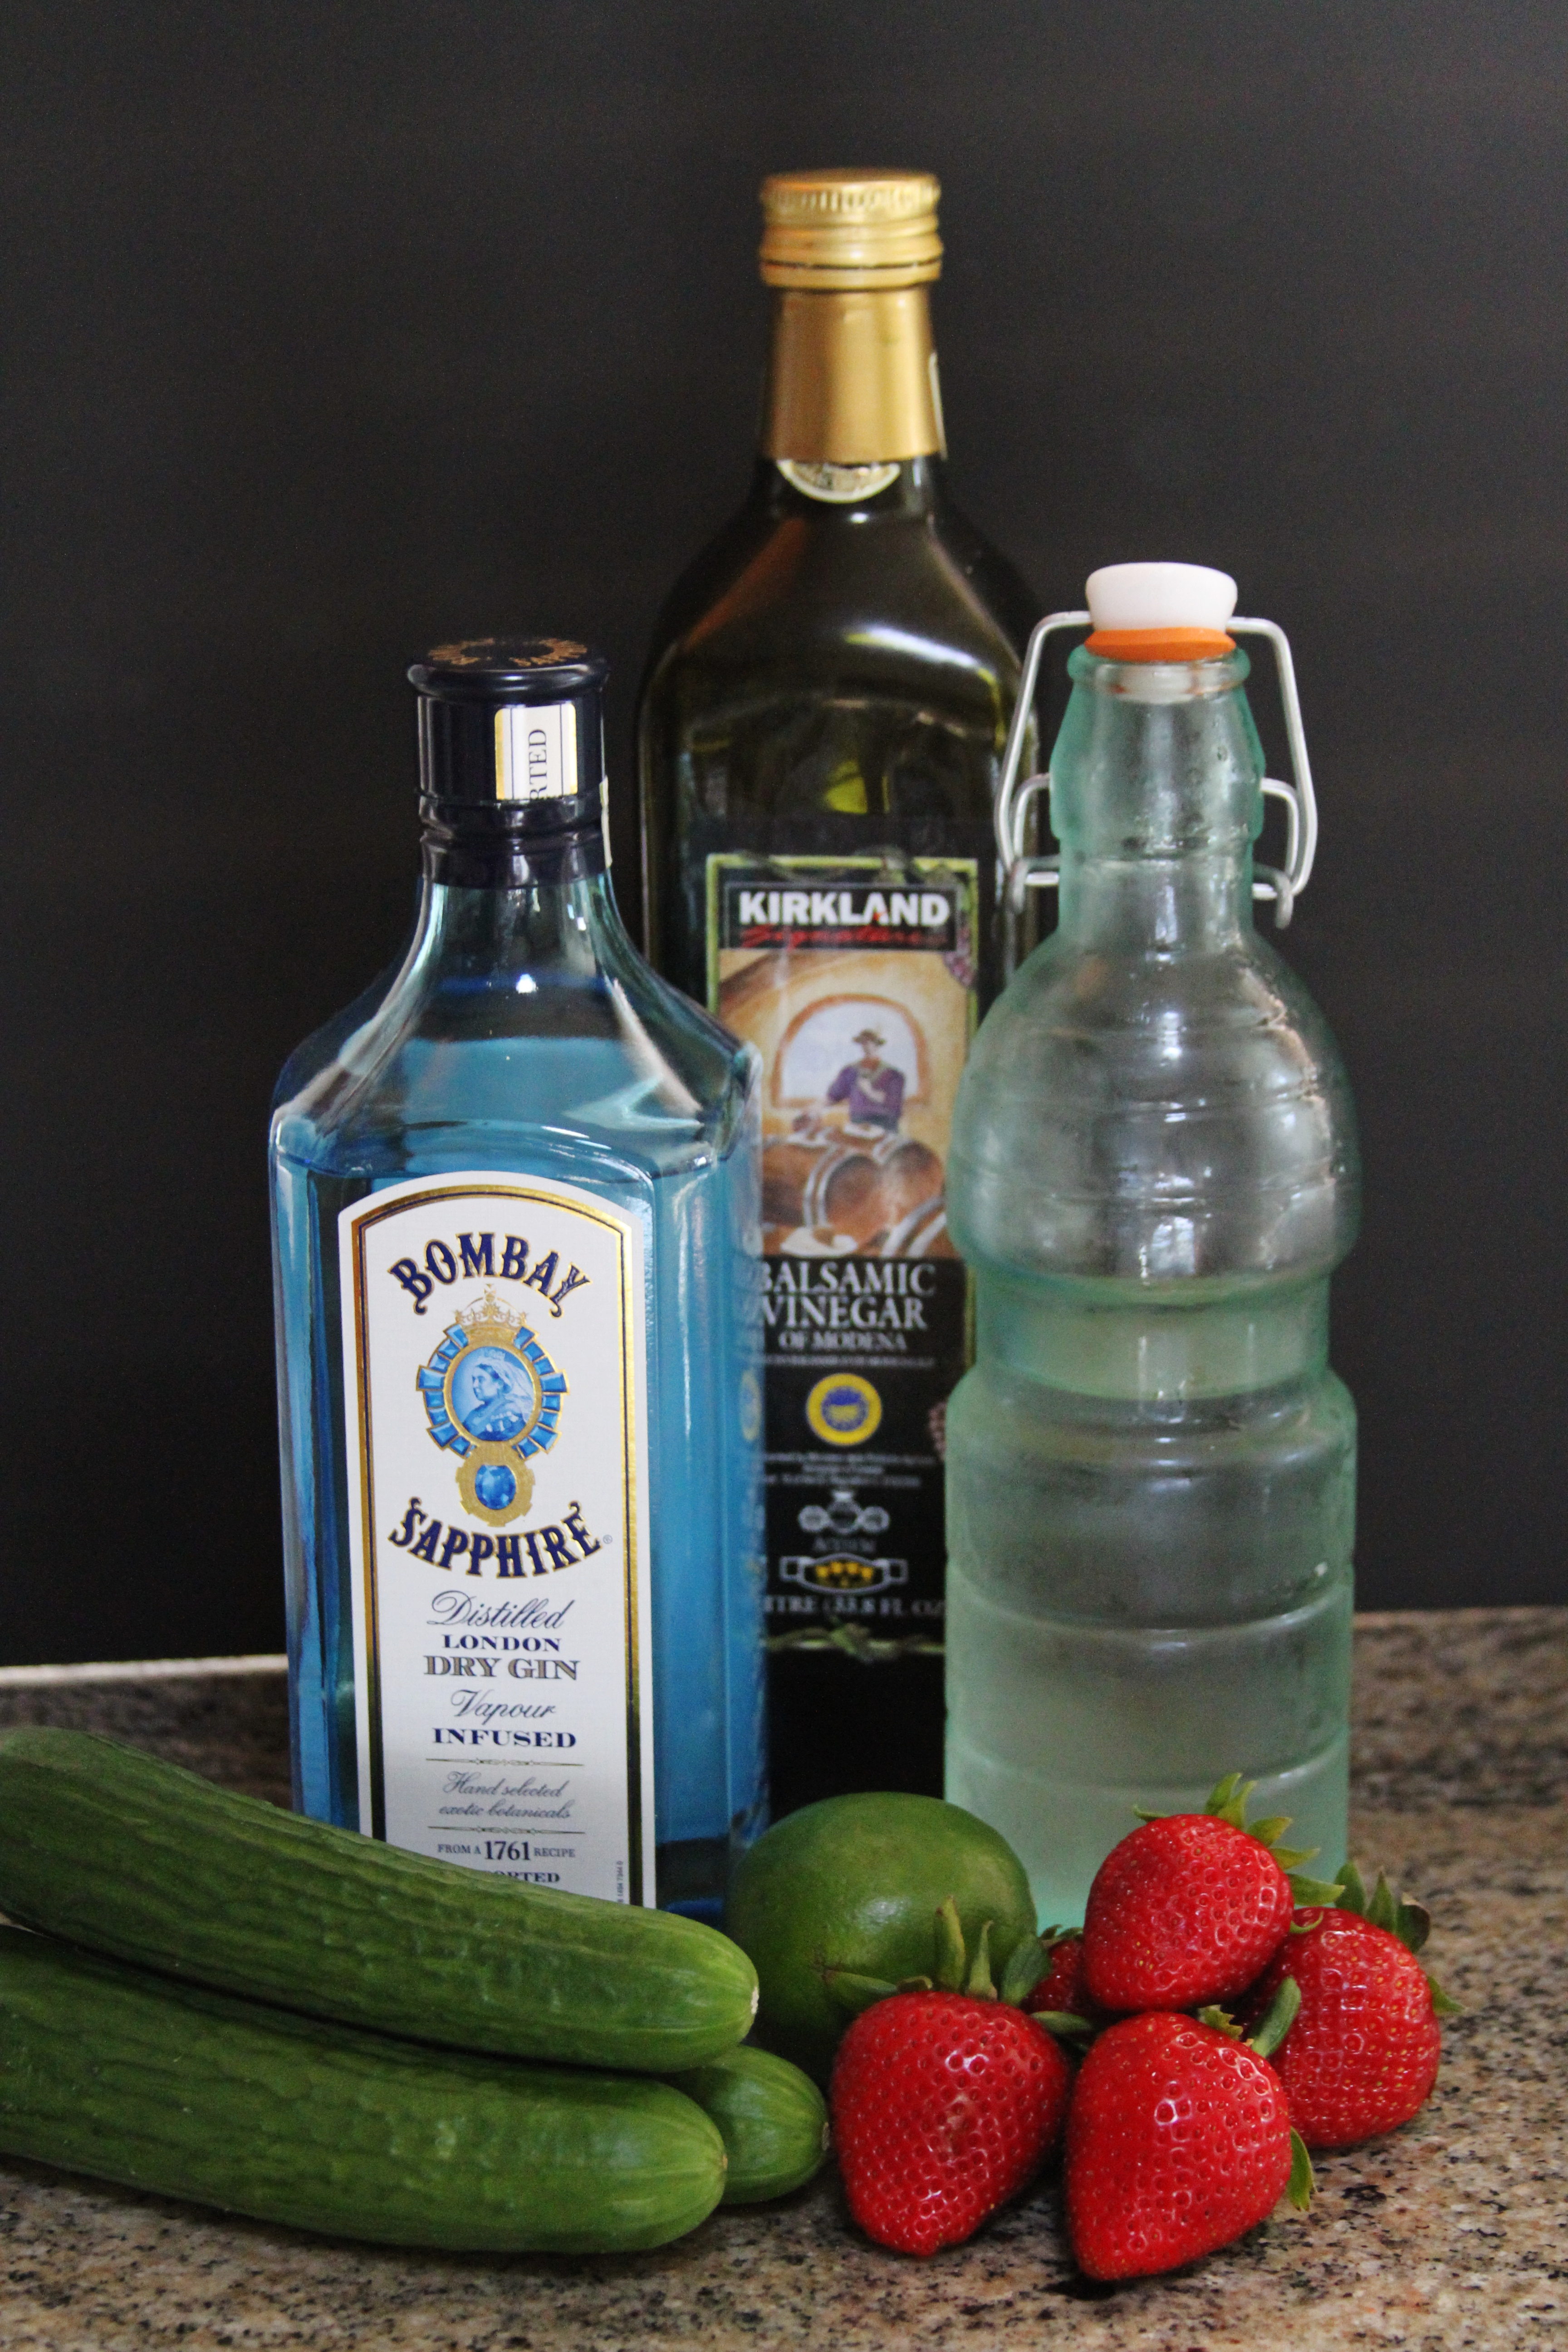 Muddle the following in a cocktail shaker 4-5 times to release the ...